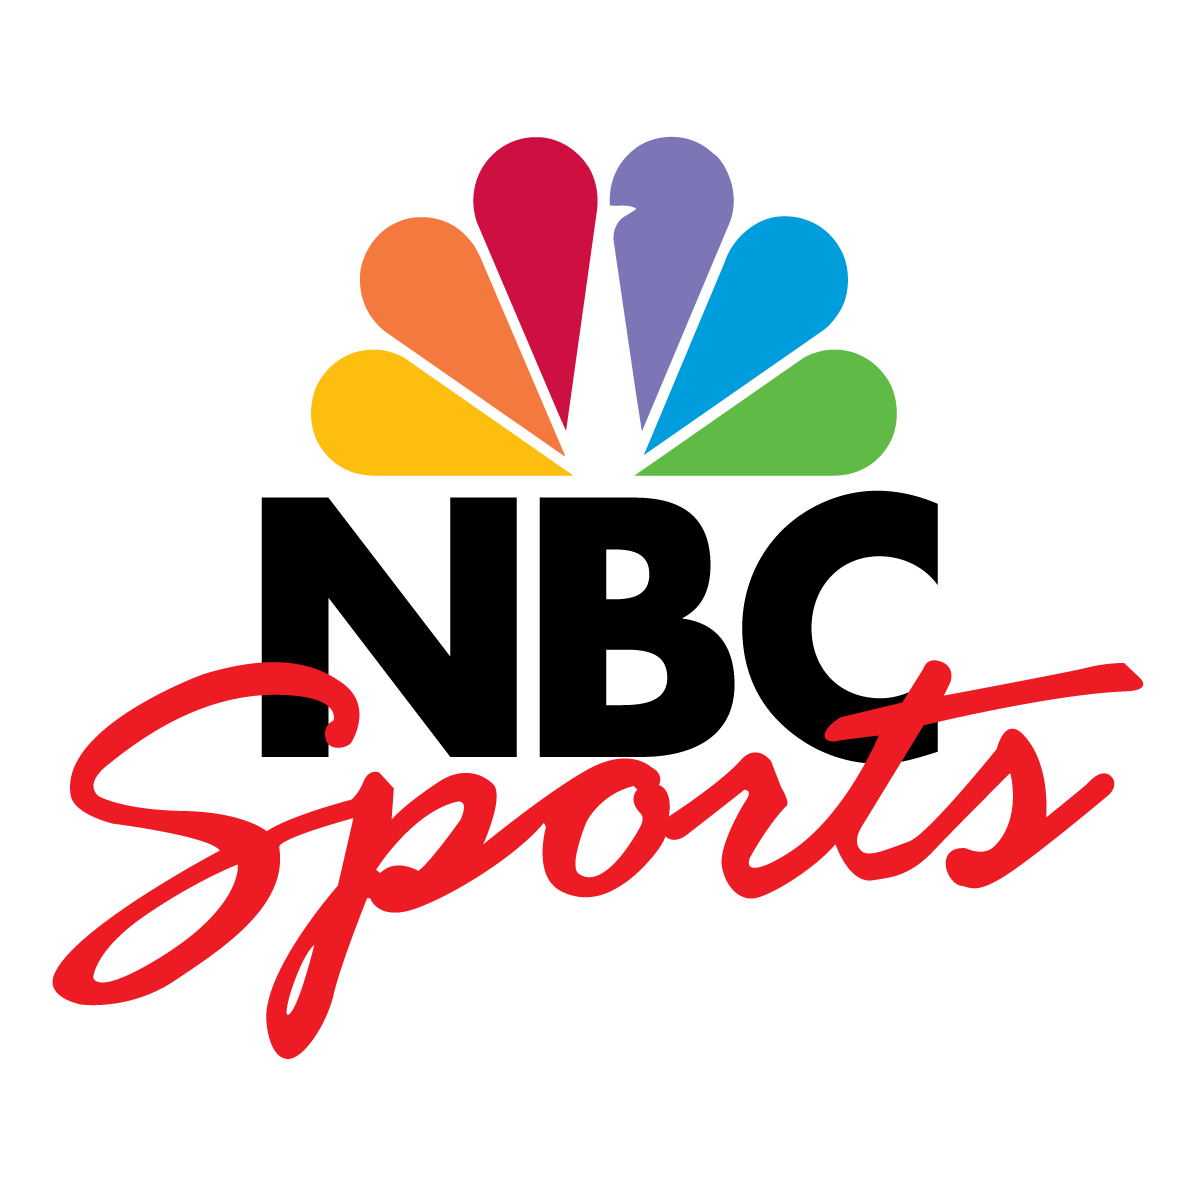 NBC images NBC HD wallpaper and background photos (324558)